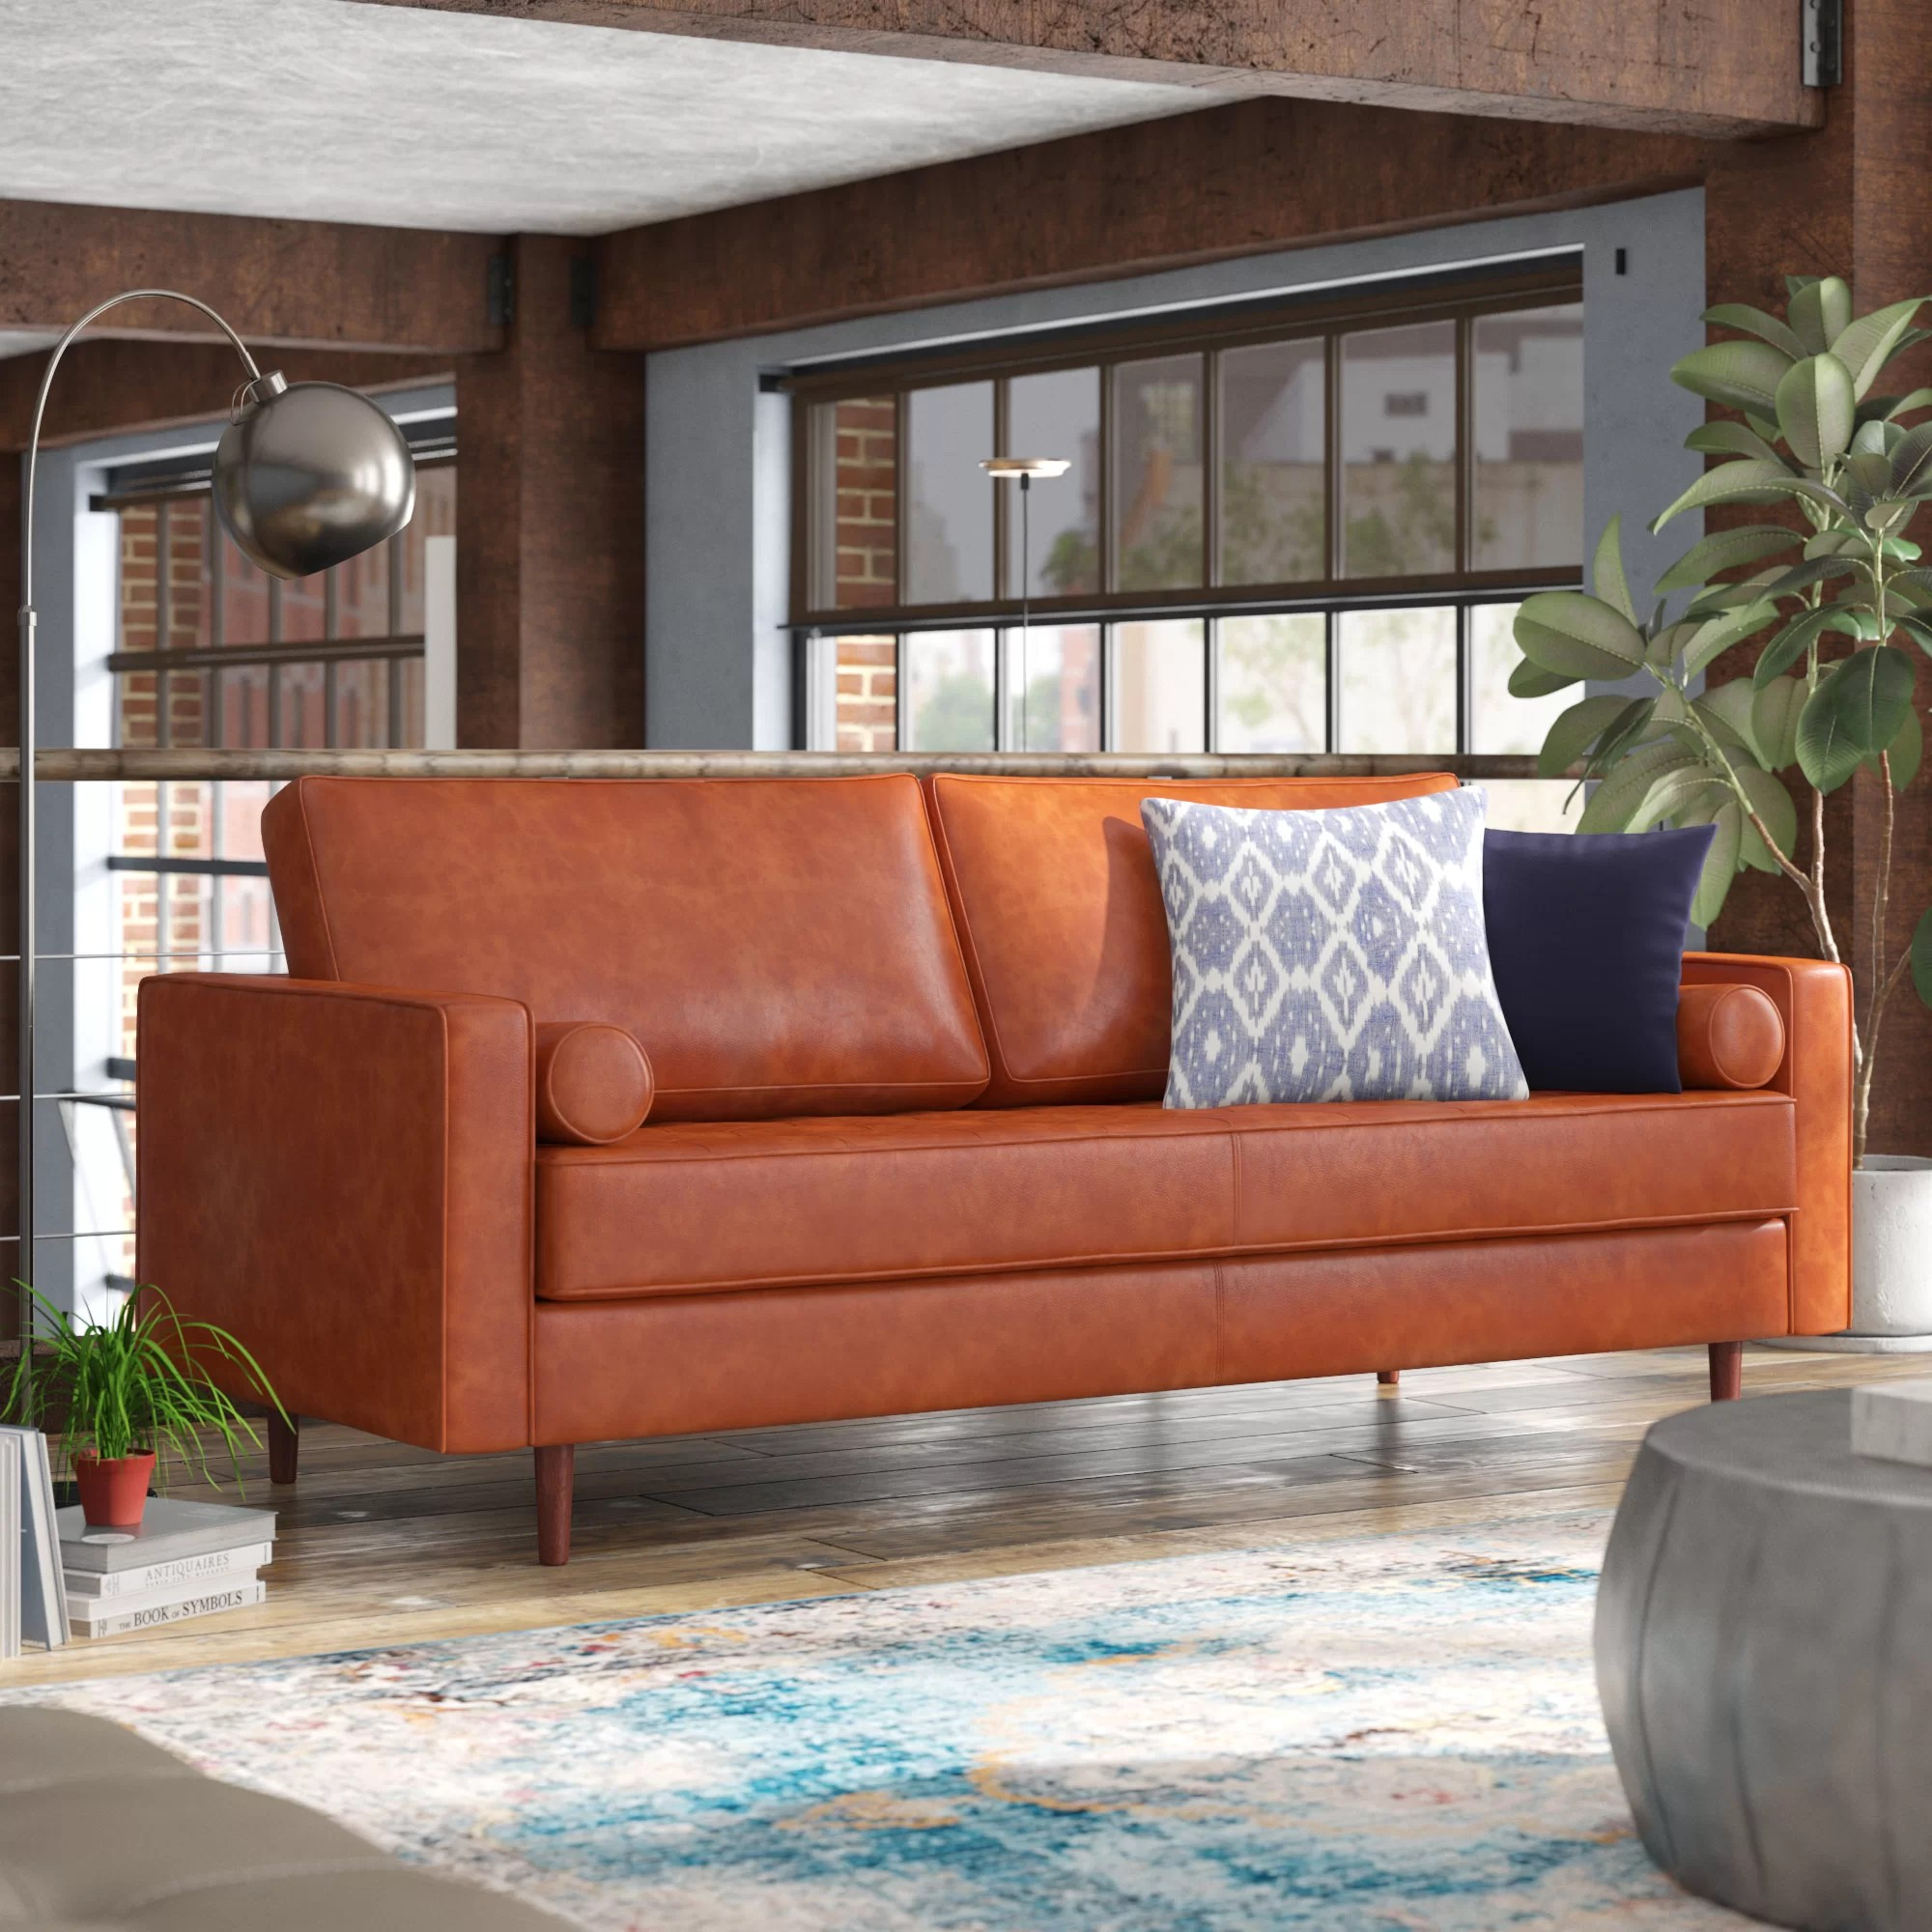 Sofas And Stuff Reviews Bombay Leather Sofa